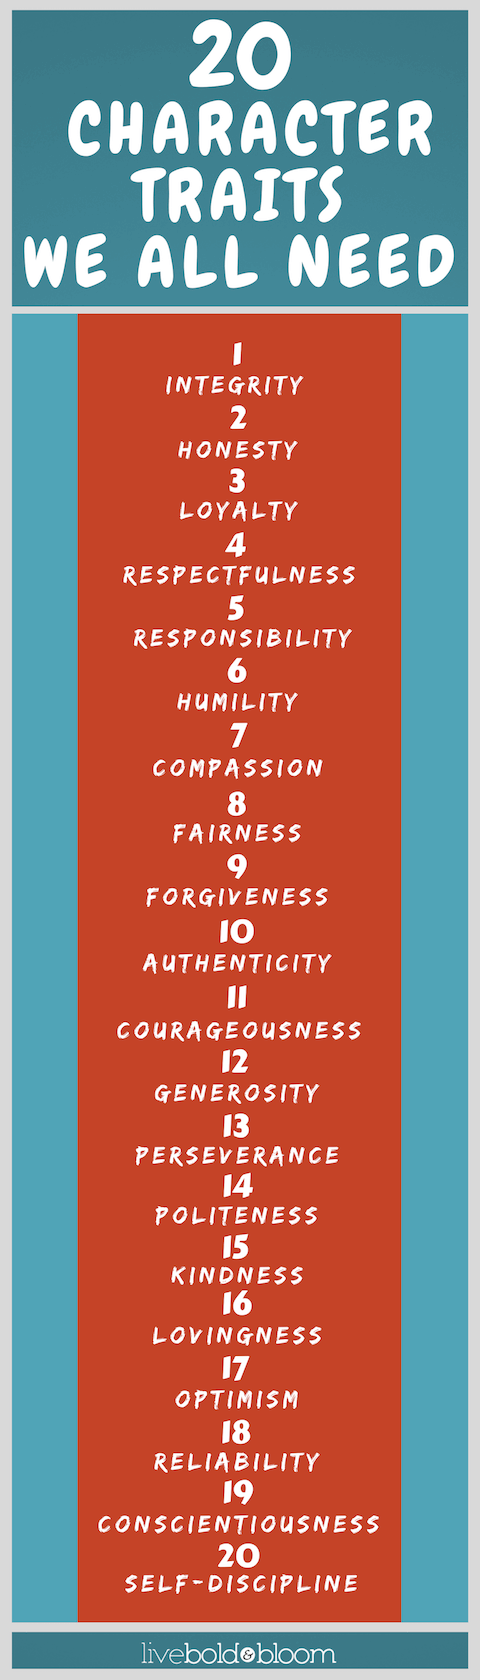 25 Good Character Traits List Of Positive Character